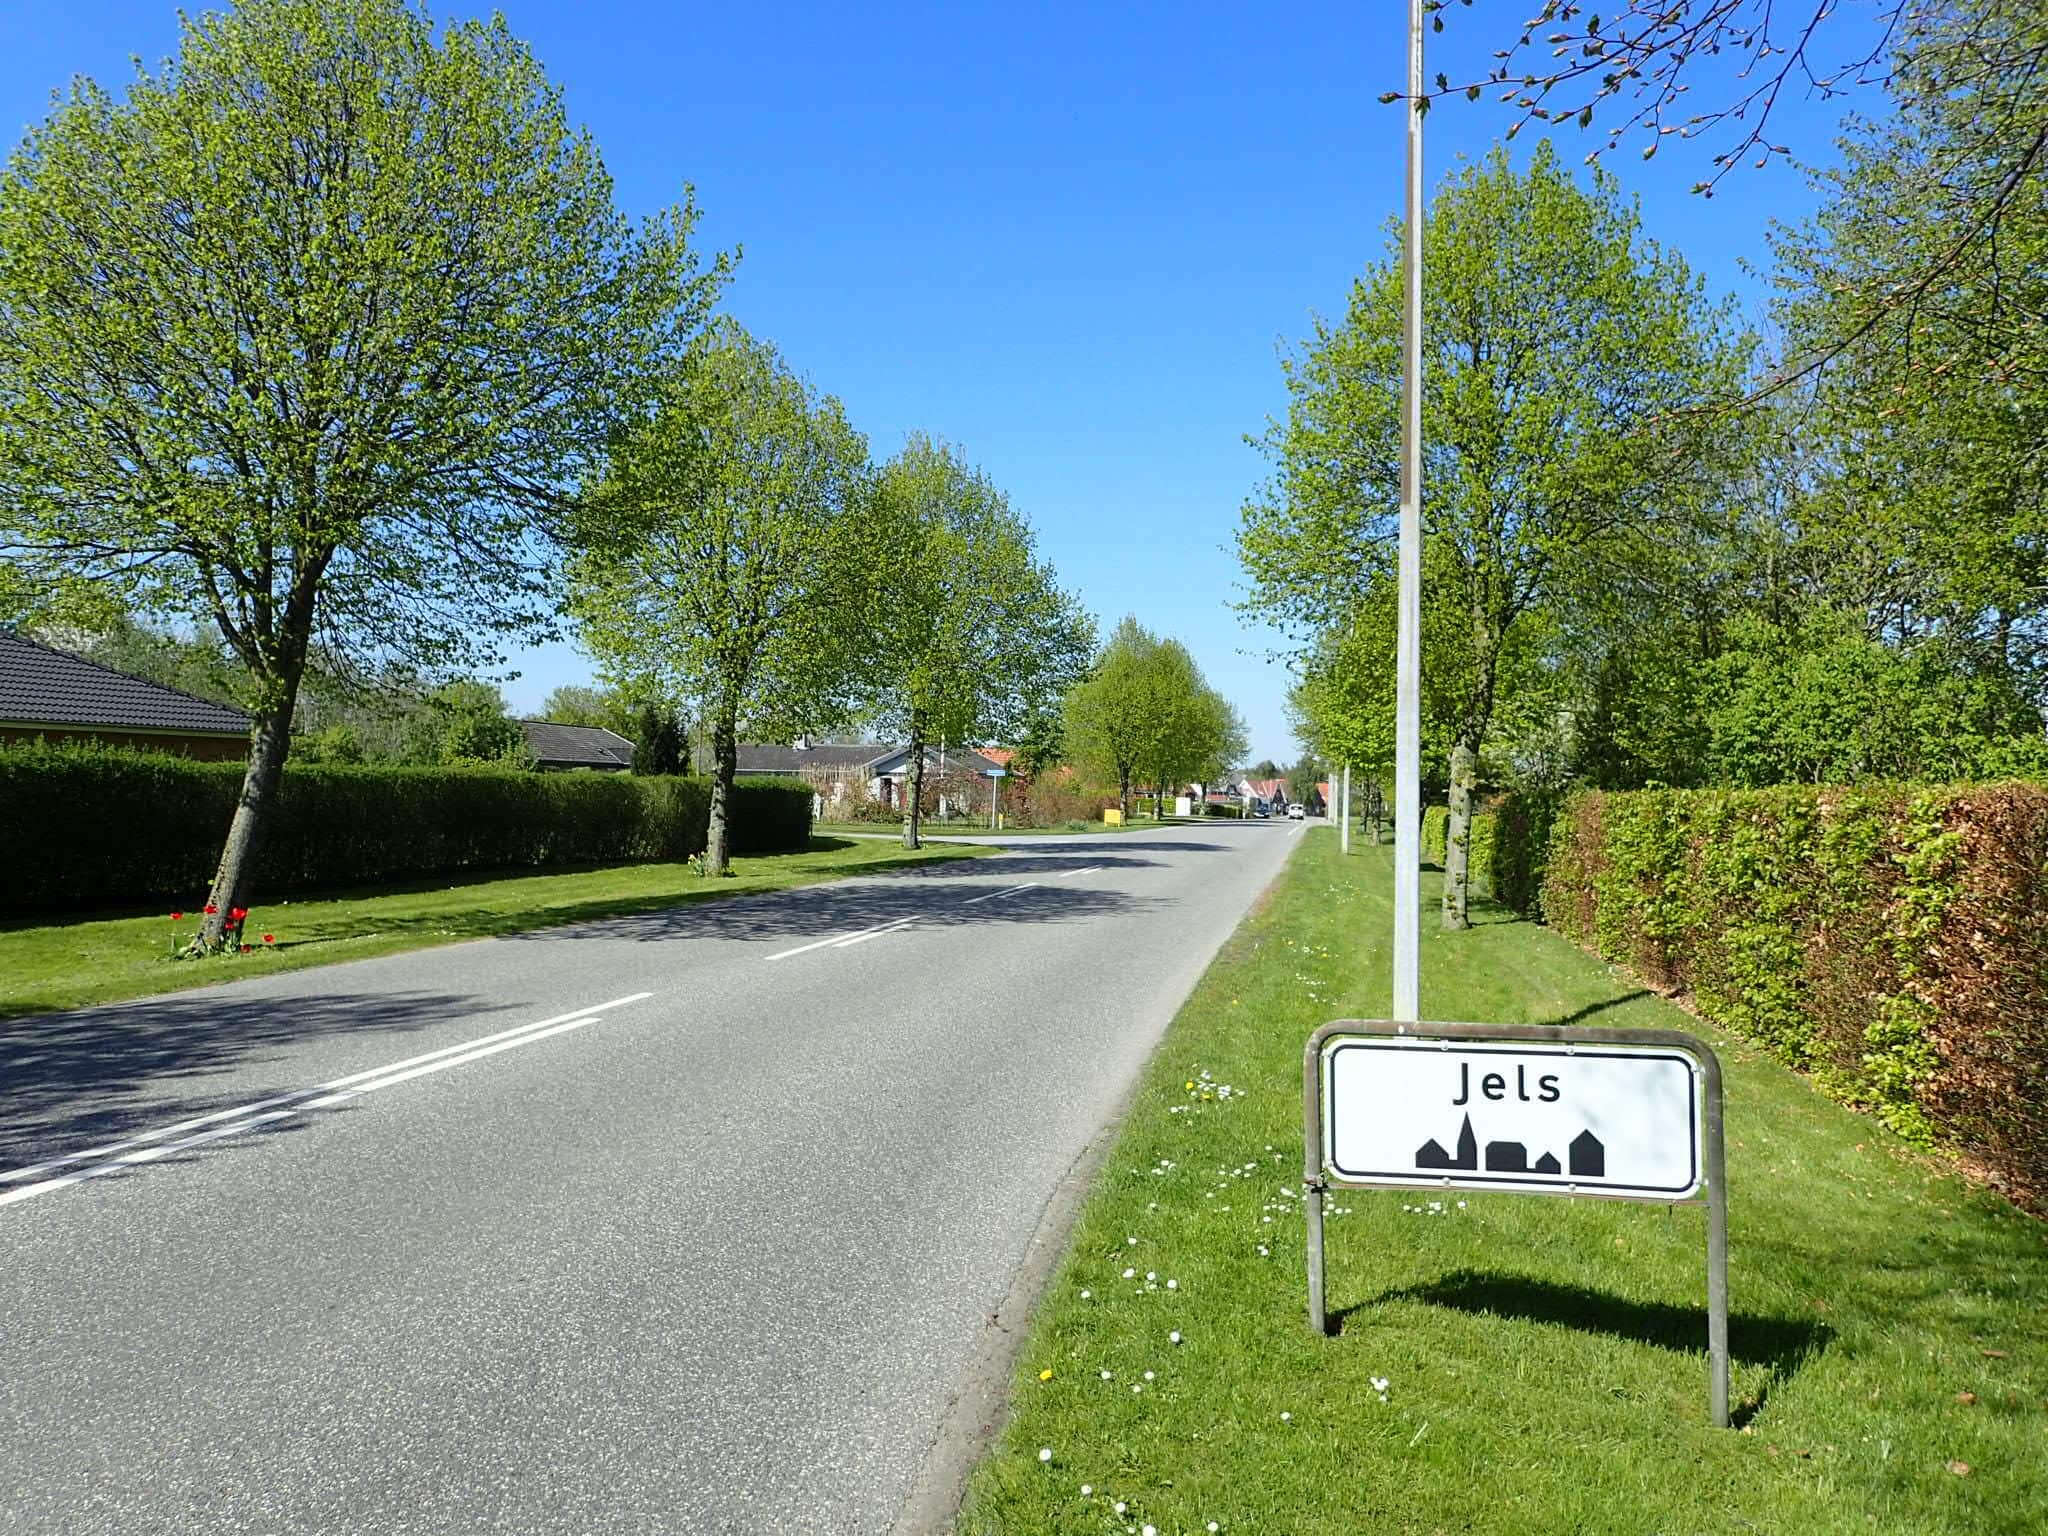 The small town of Jels